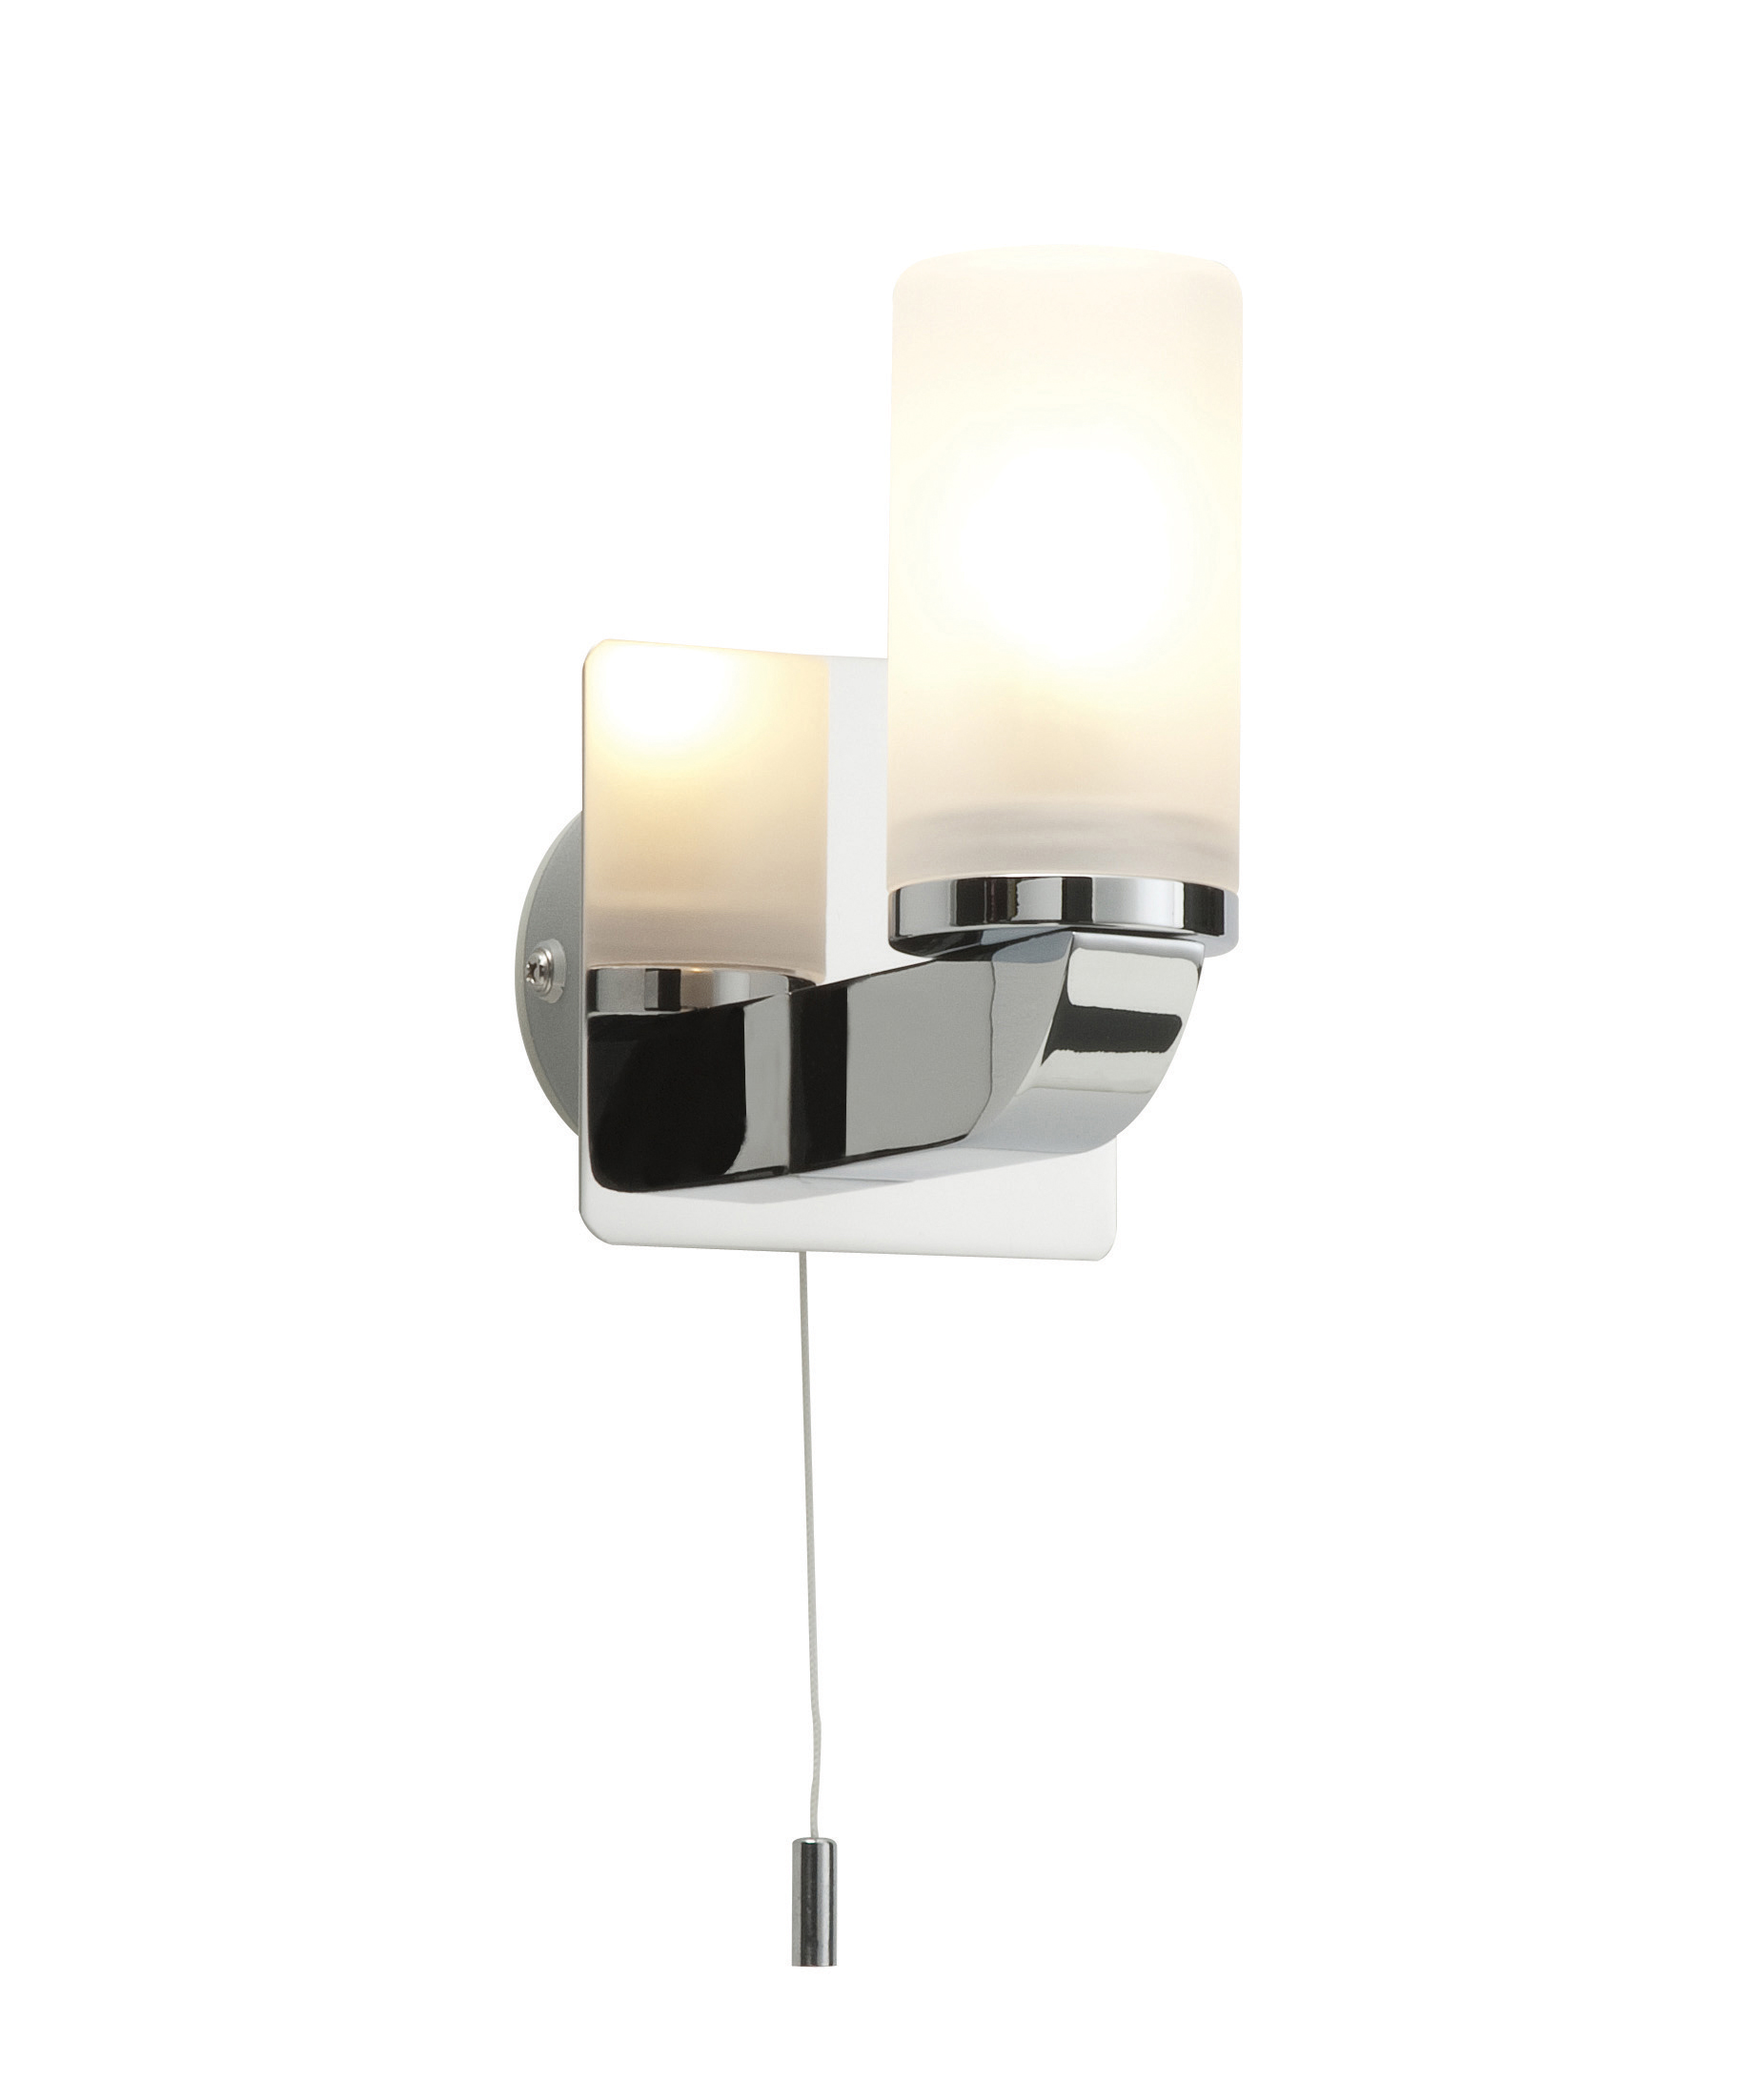 Bathroom Wall Lights Pull Cord Switch : Saxby Cara single bathroom wall light pull cord switch chrome glass 28W G9 eBay